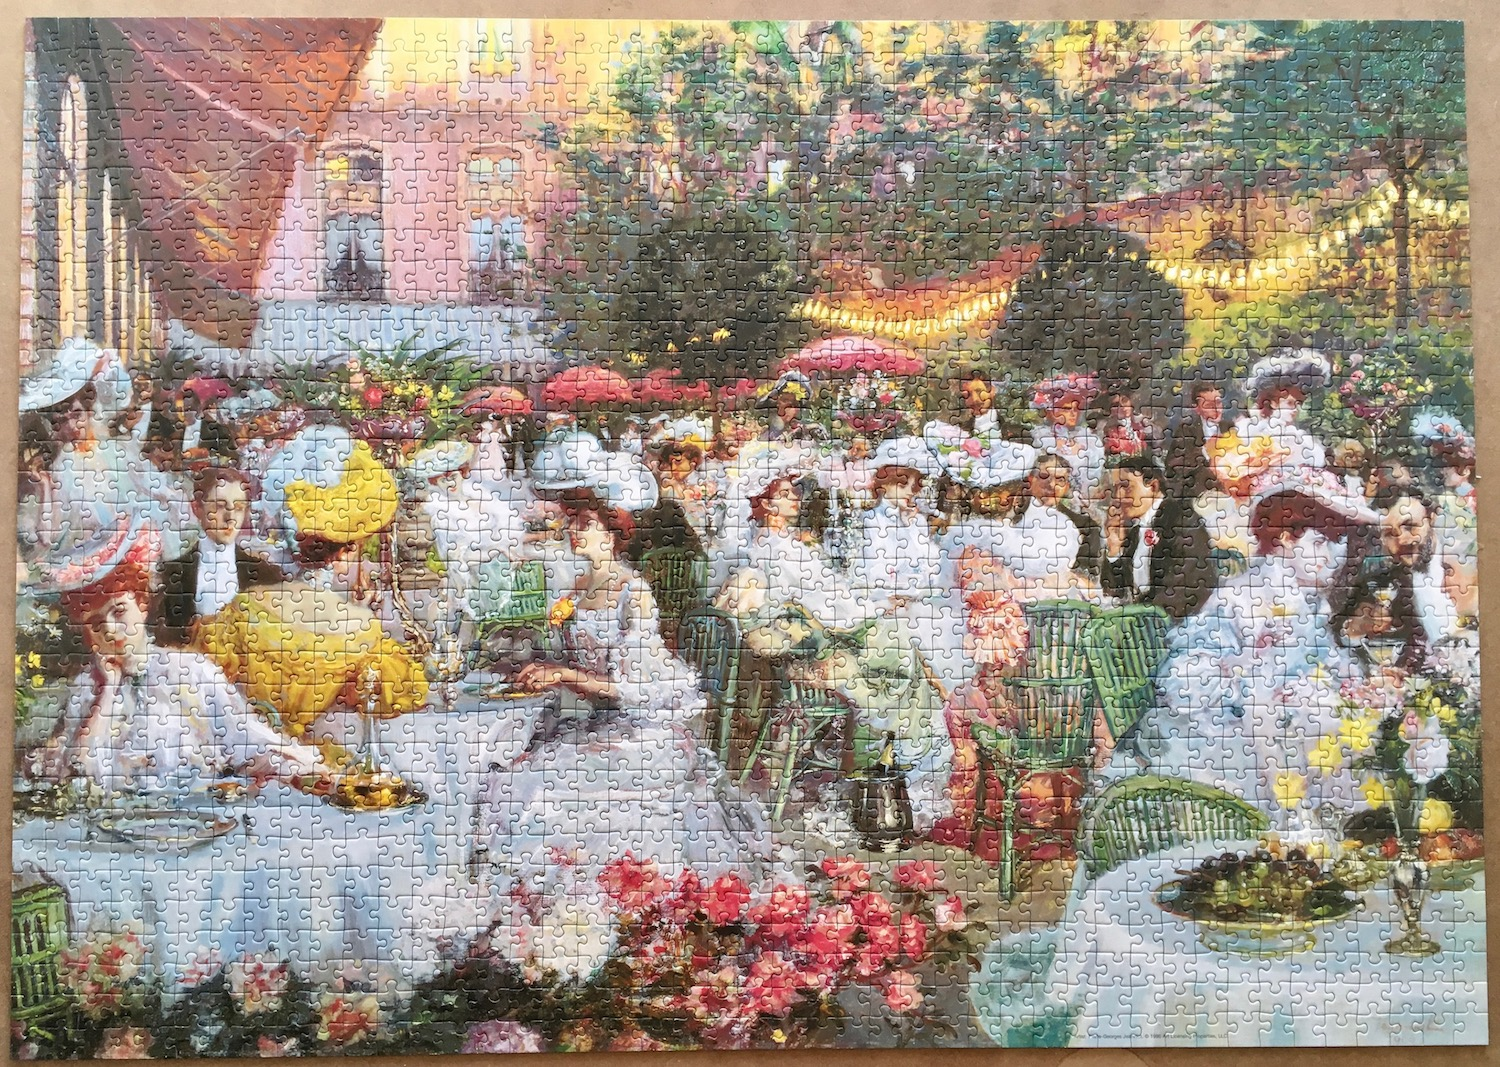 Image of the puzzle assembled 1500, Ravensburger, The Dinner at the Hotel Ritz in Paris